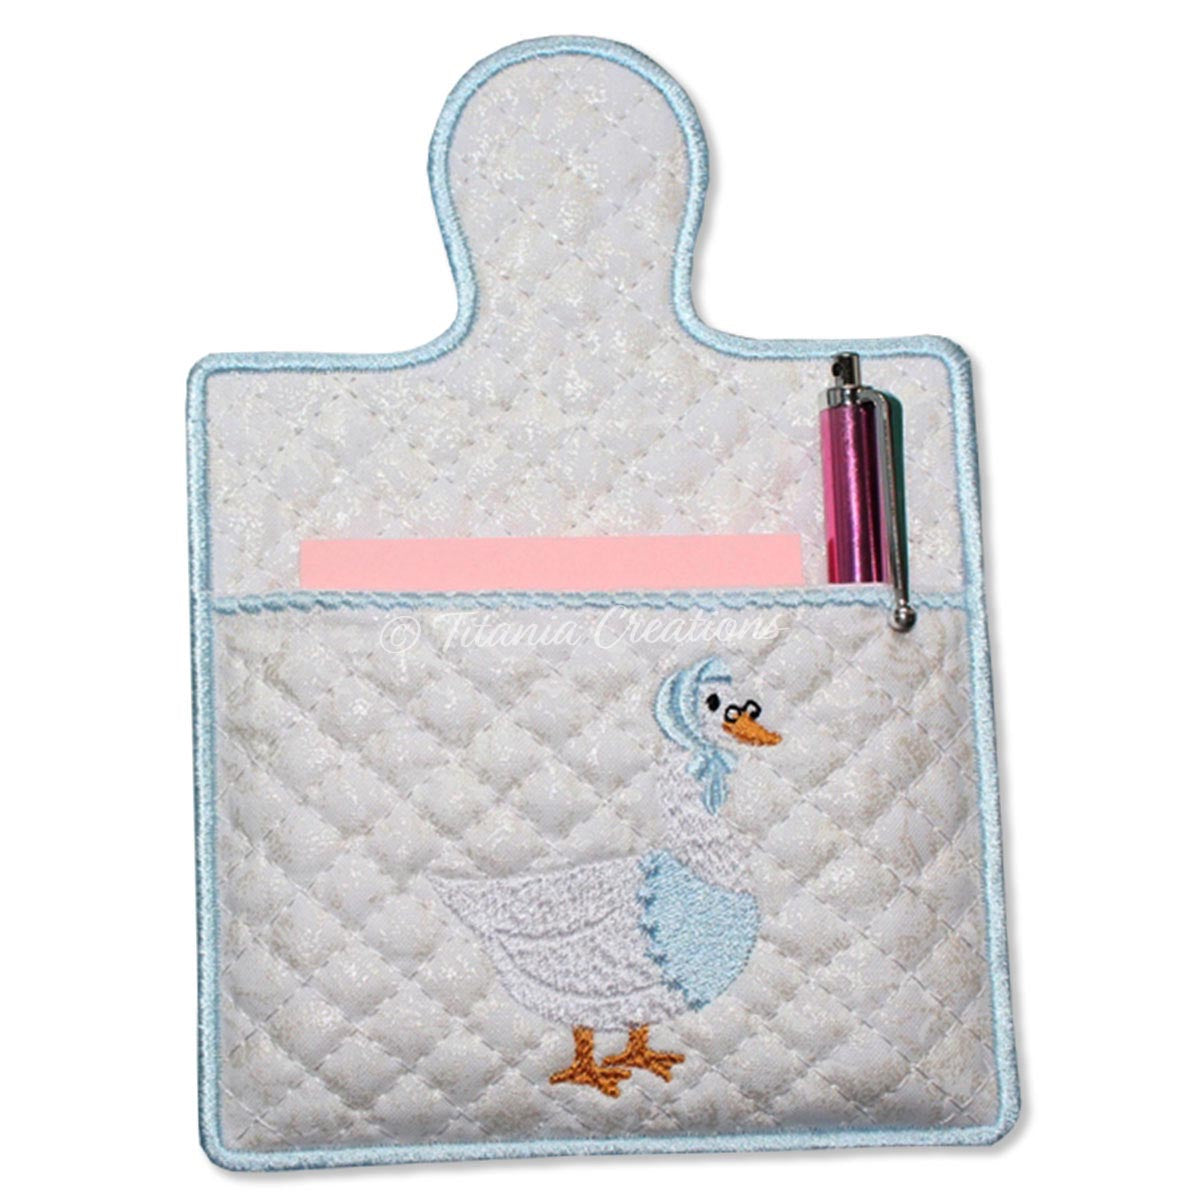 ITH Mrs Goose Note Pad Holder 5x7 6x10 7x11 8x12